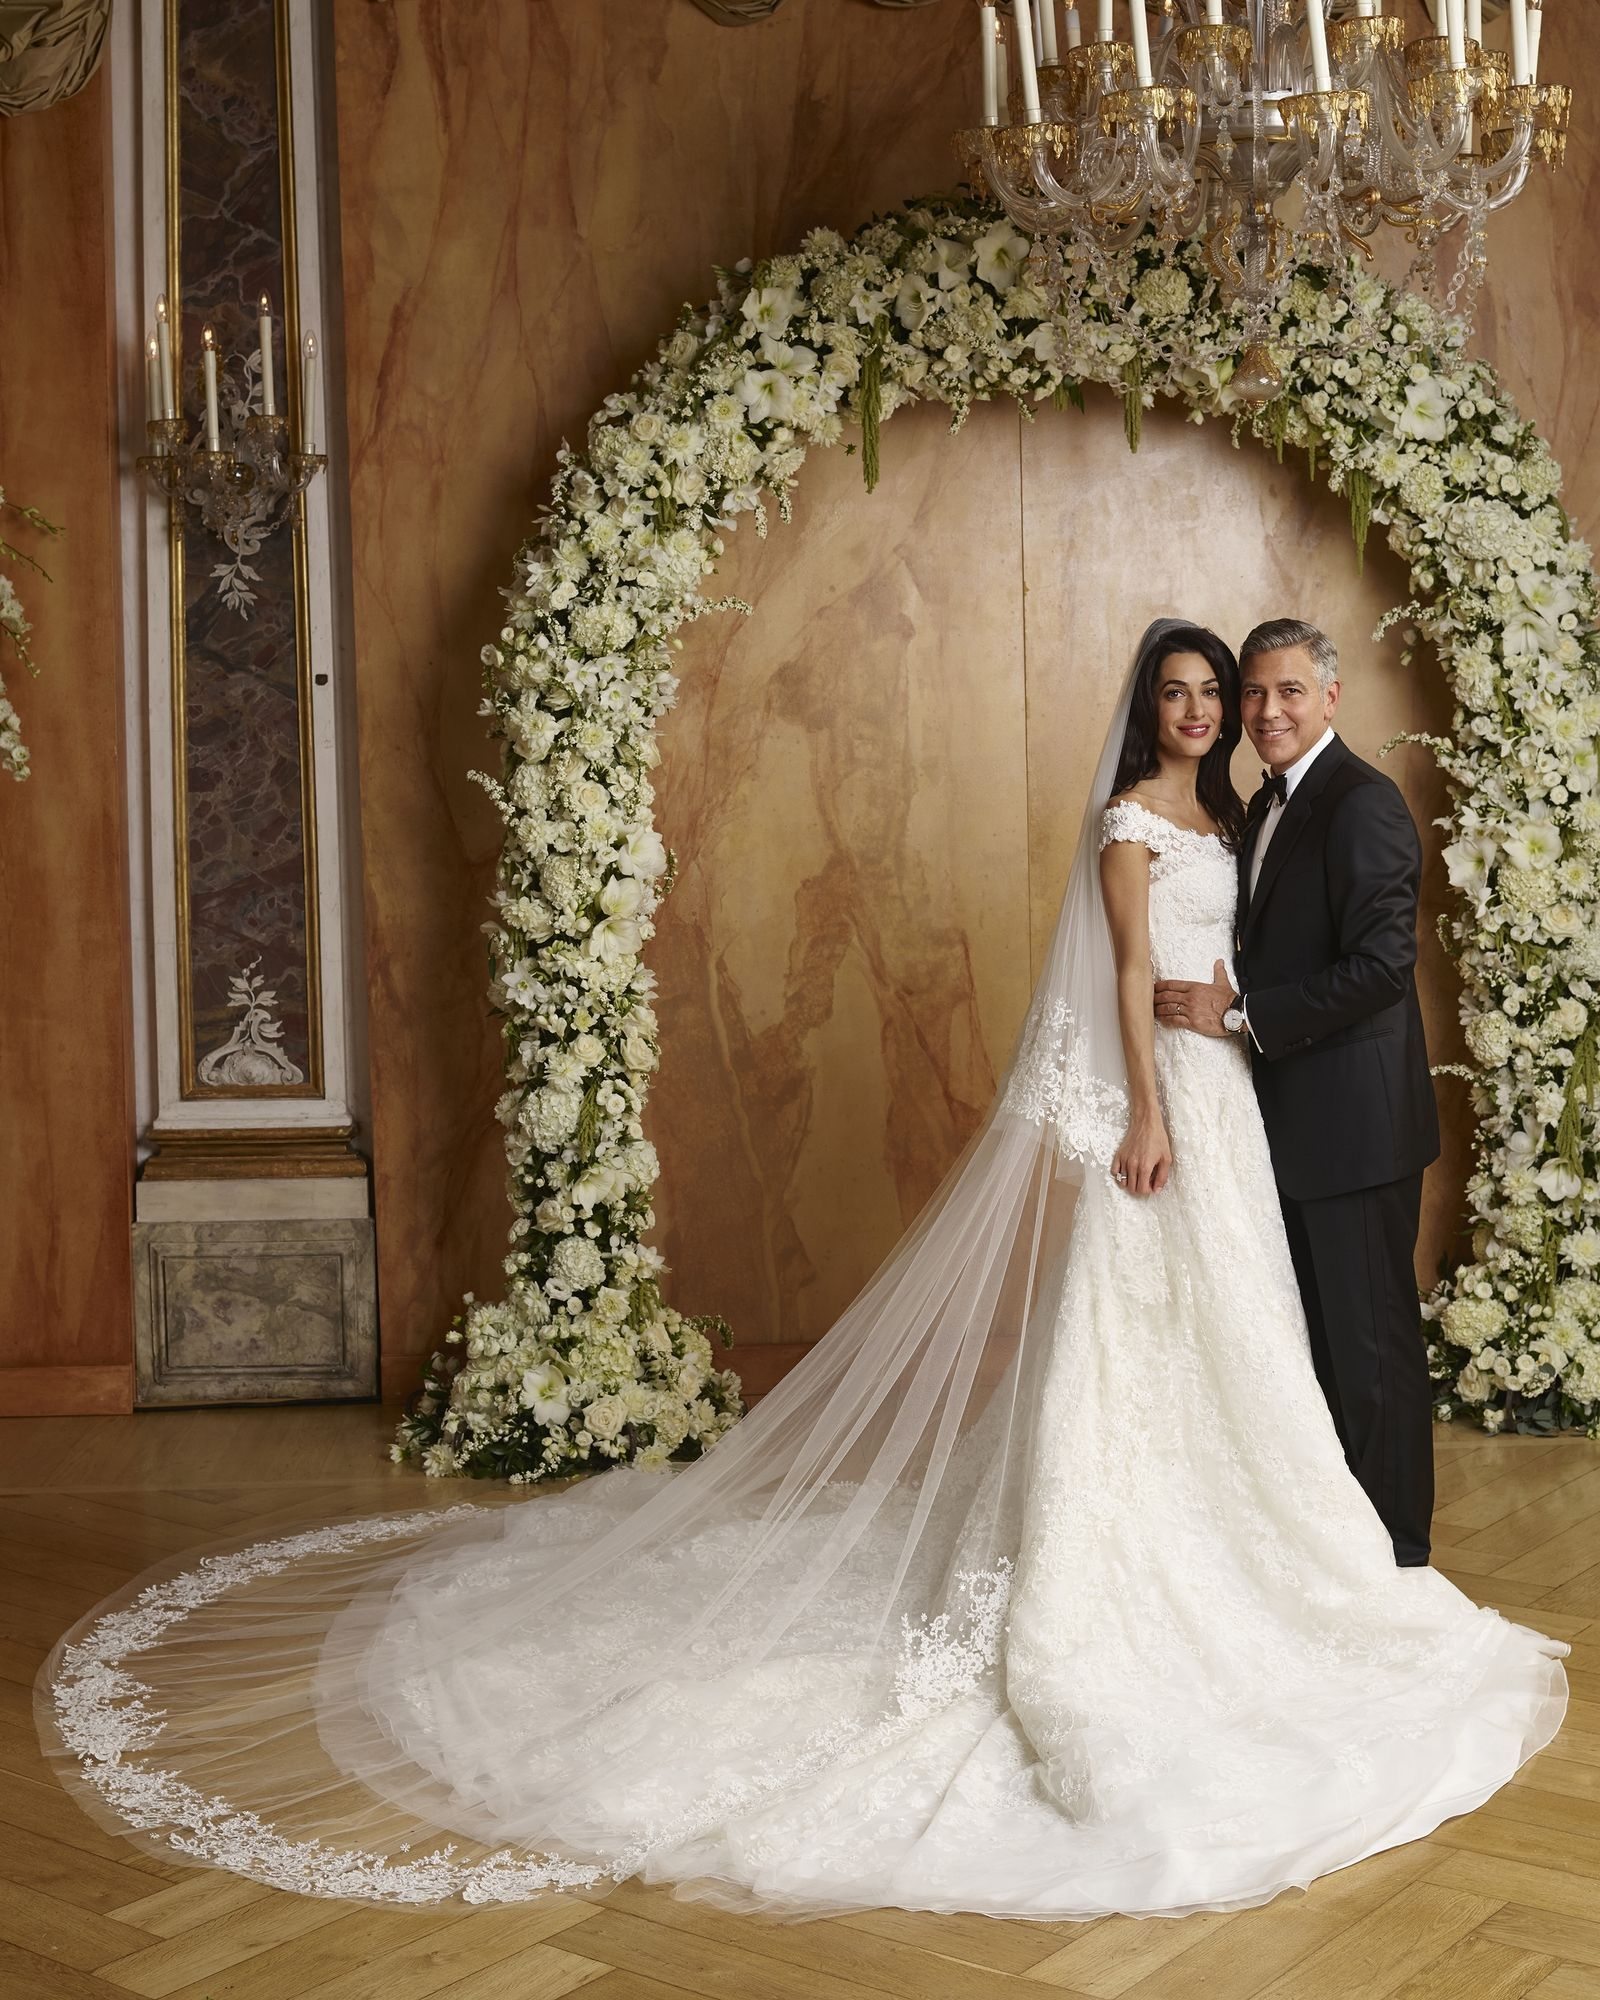 Ugliest Celeb Wedding Dress: The 50 Most Iconic Wedding Gowns In History